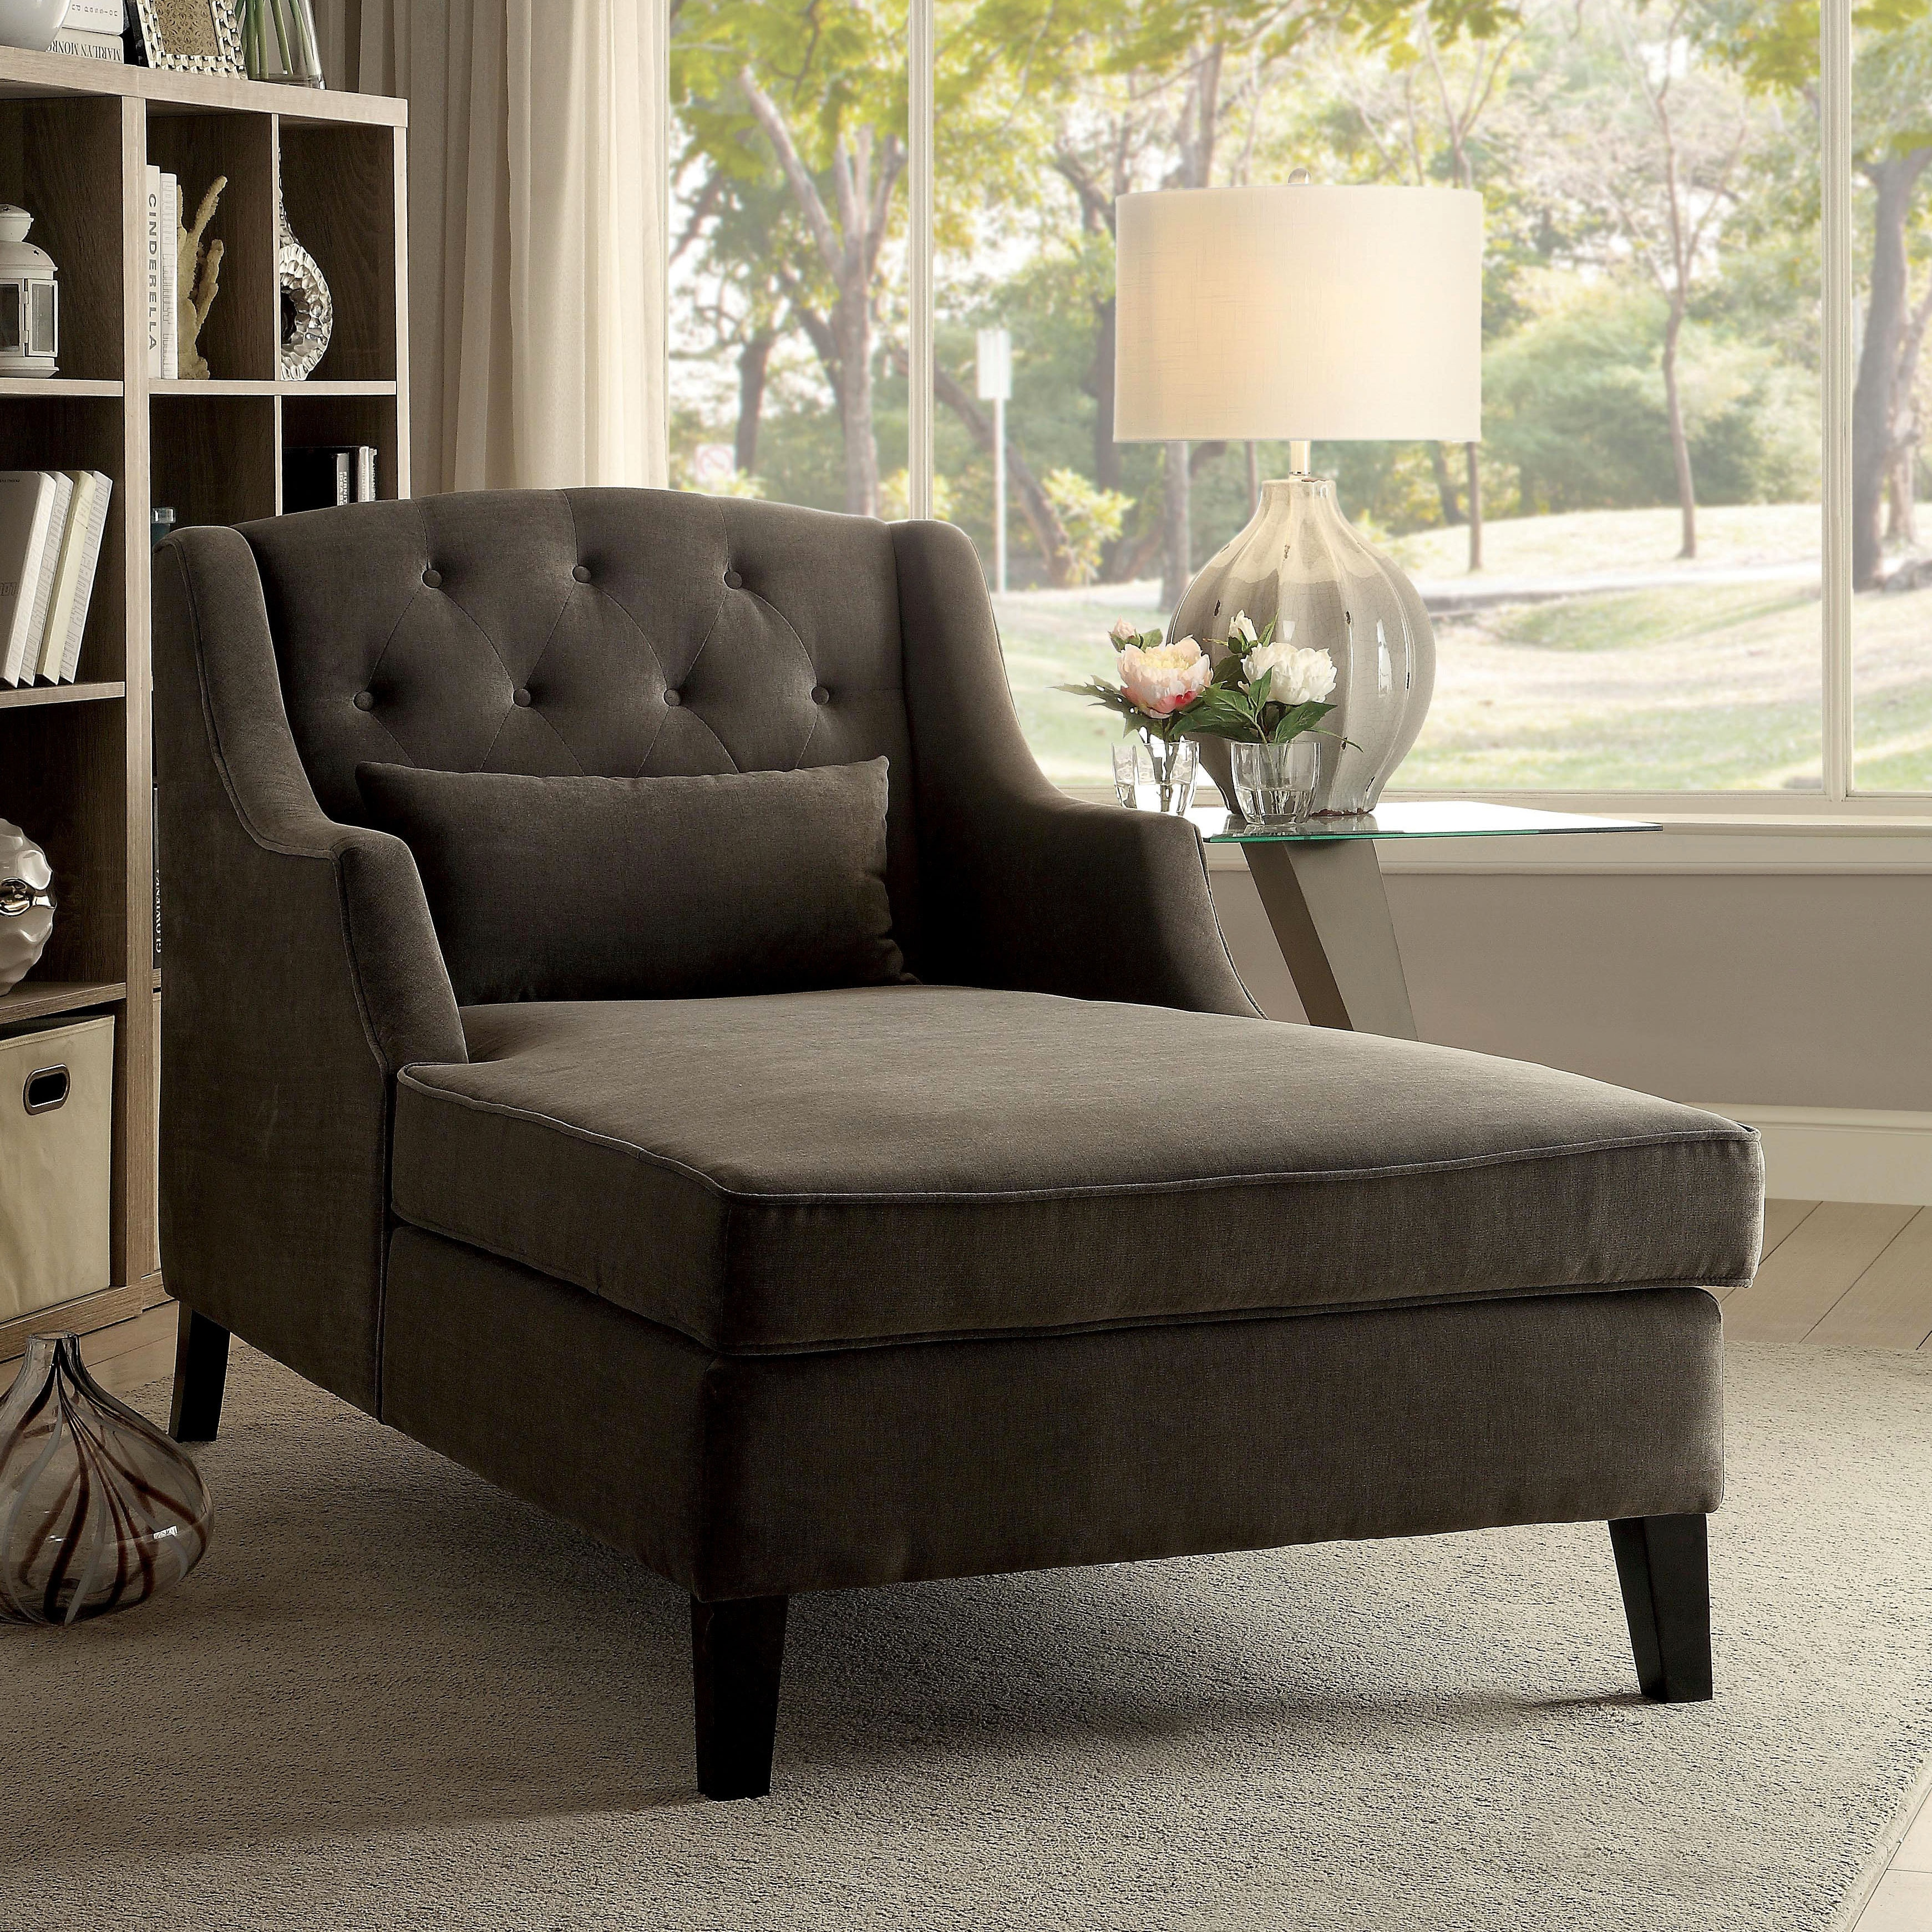 Outstanding Furniture Of America Clevin Mocha Tufted Wingback Corduroy Chaise Download Free Architecture Designs Intelgarnamadebymaigaardcom